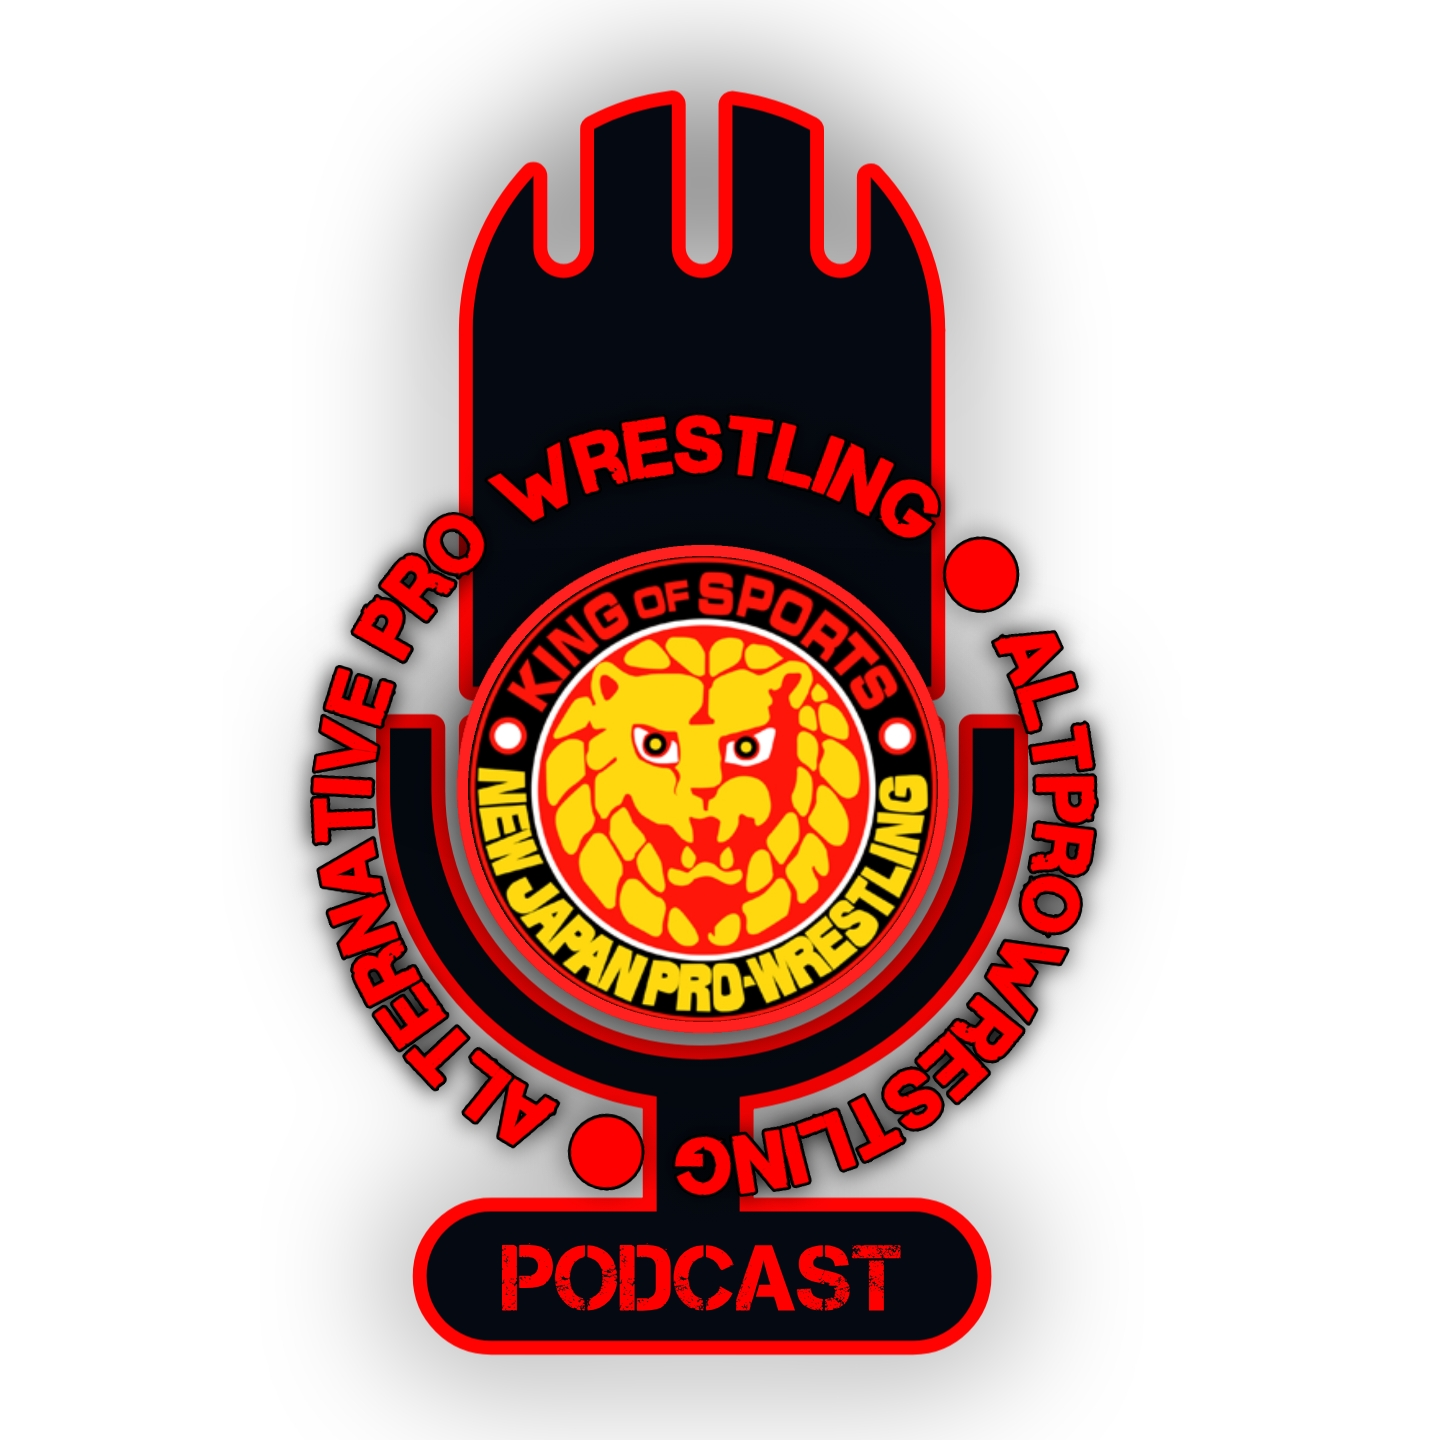 altprowrestling njpw update June13, 2019